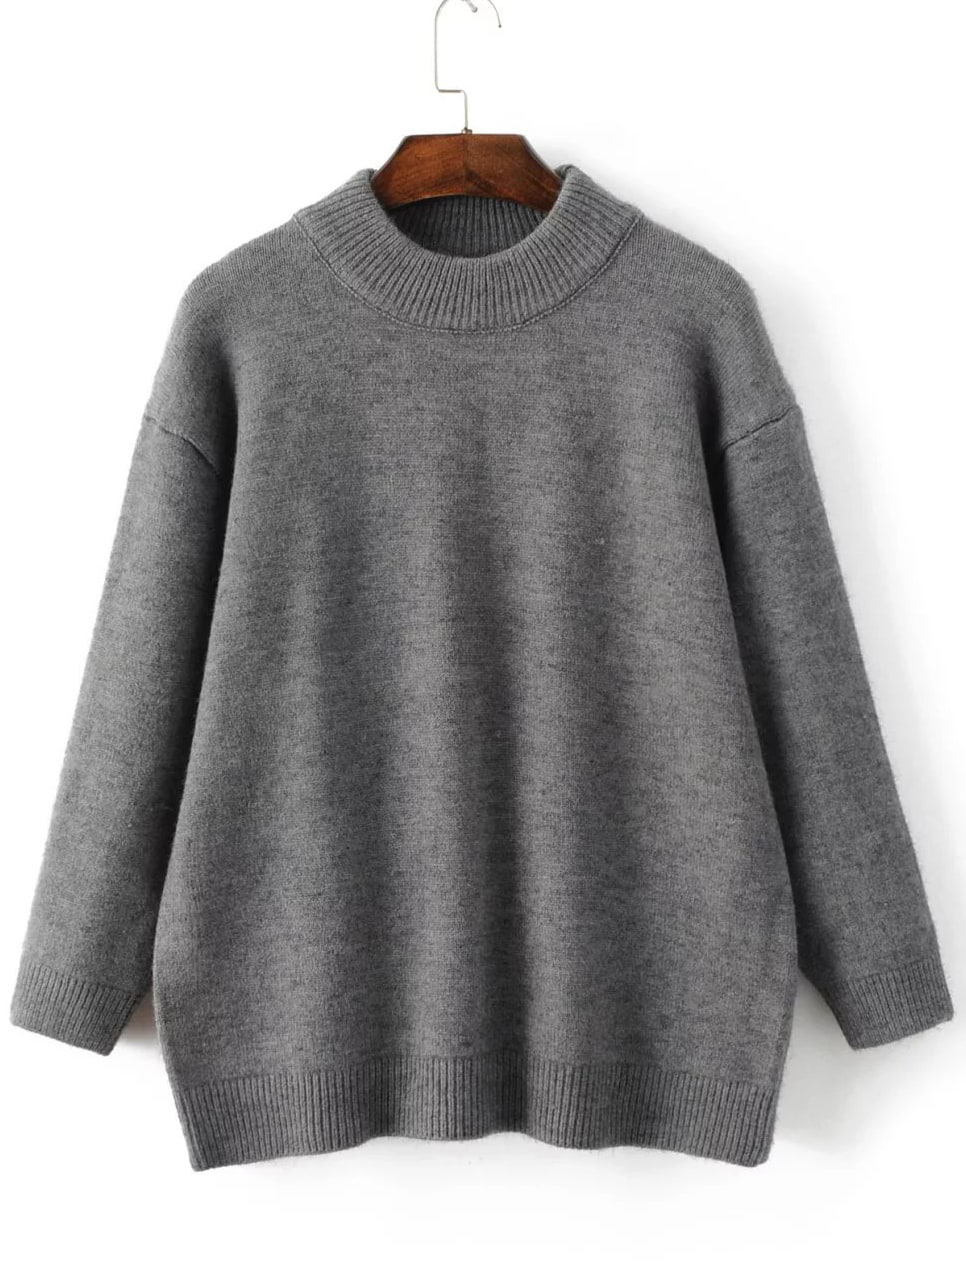 Grey Crew Neck Ribbed Trim Sweater